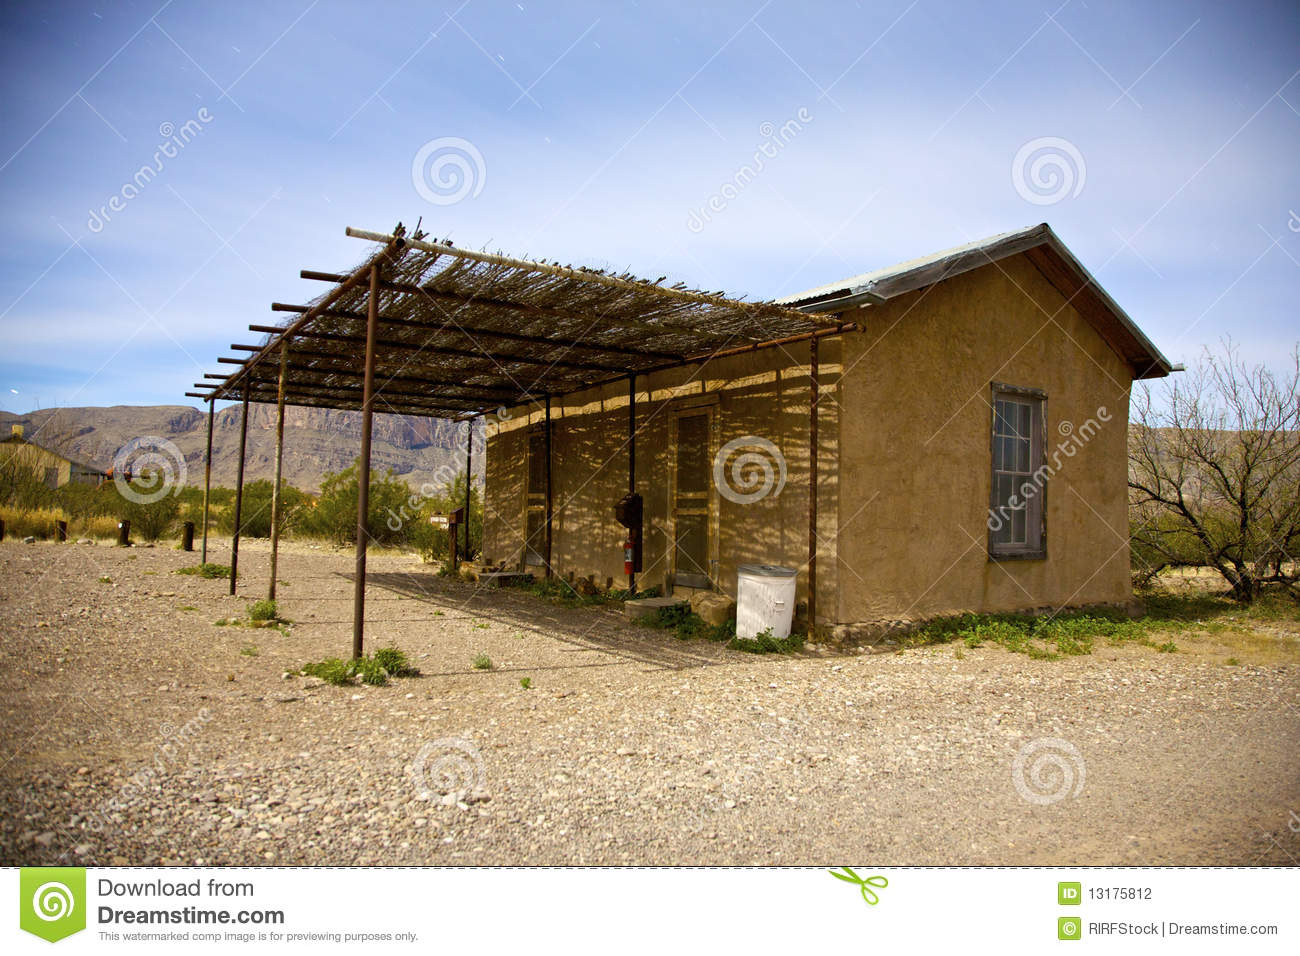 Adobe Building Stock Photography Image 13175812